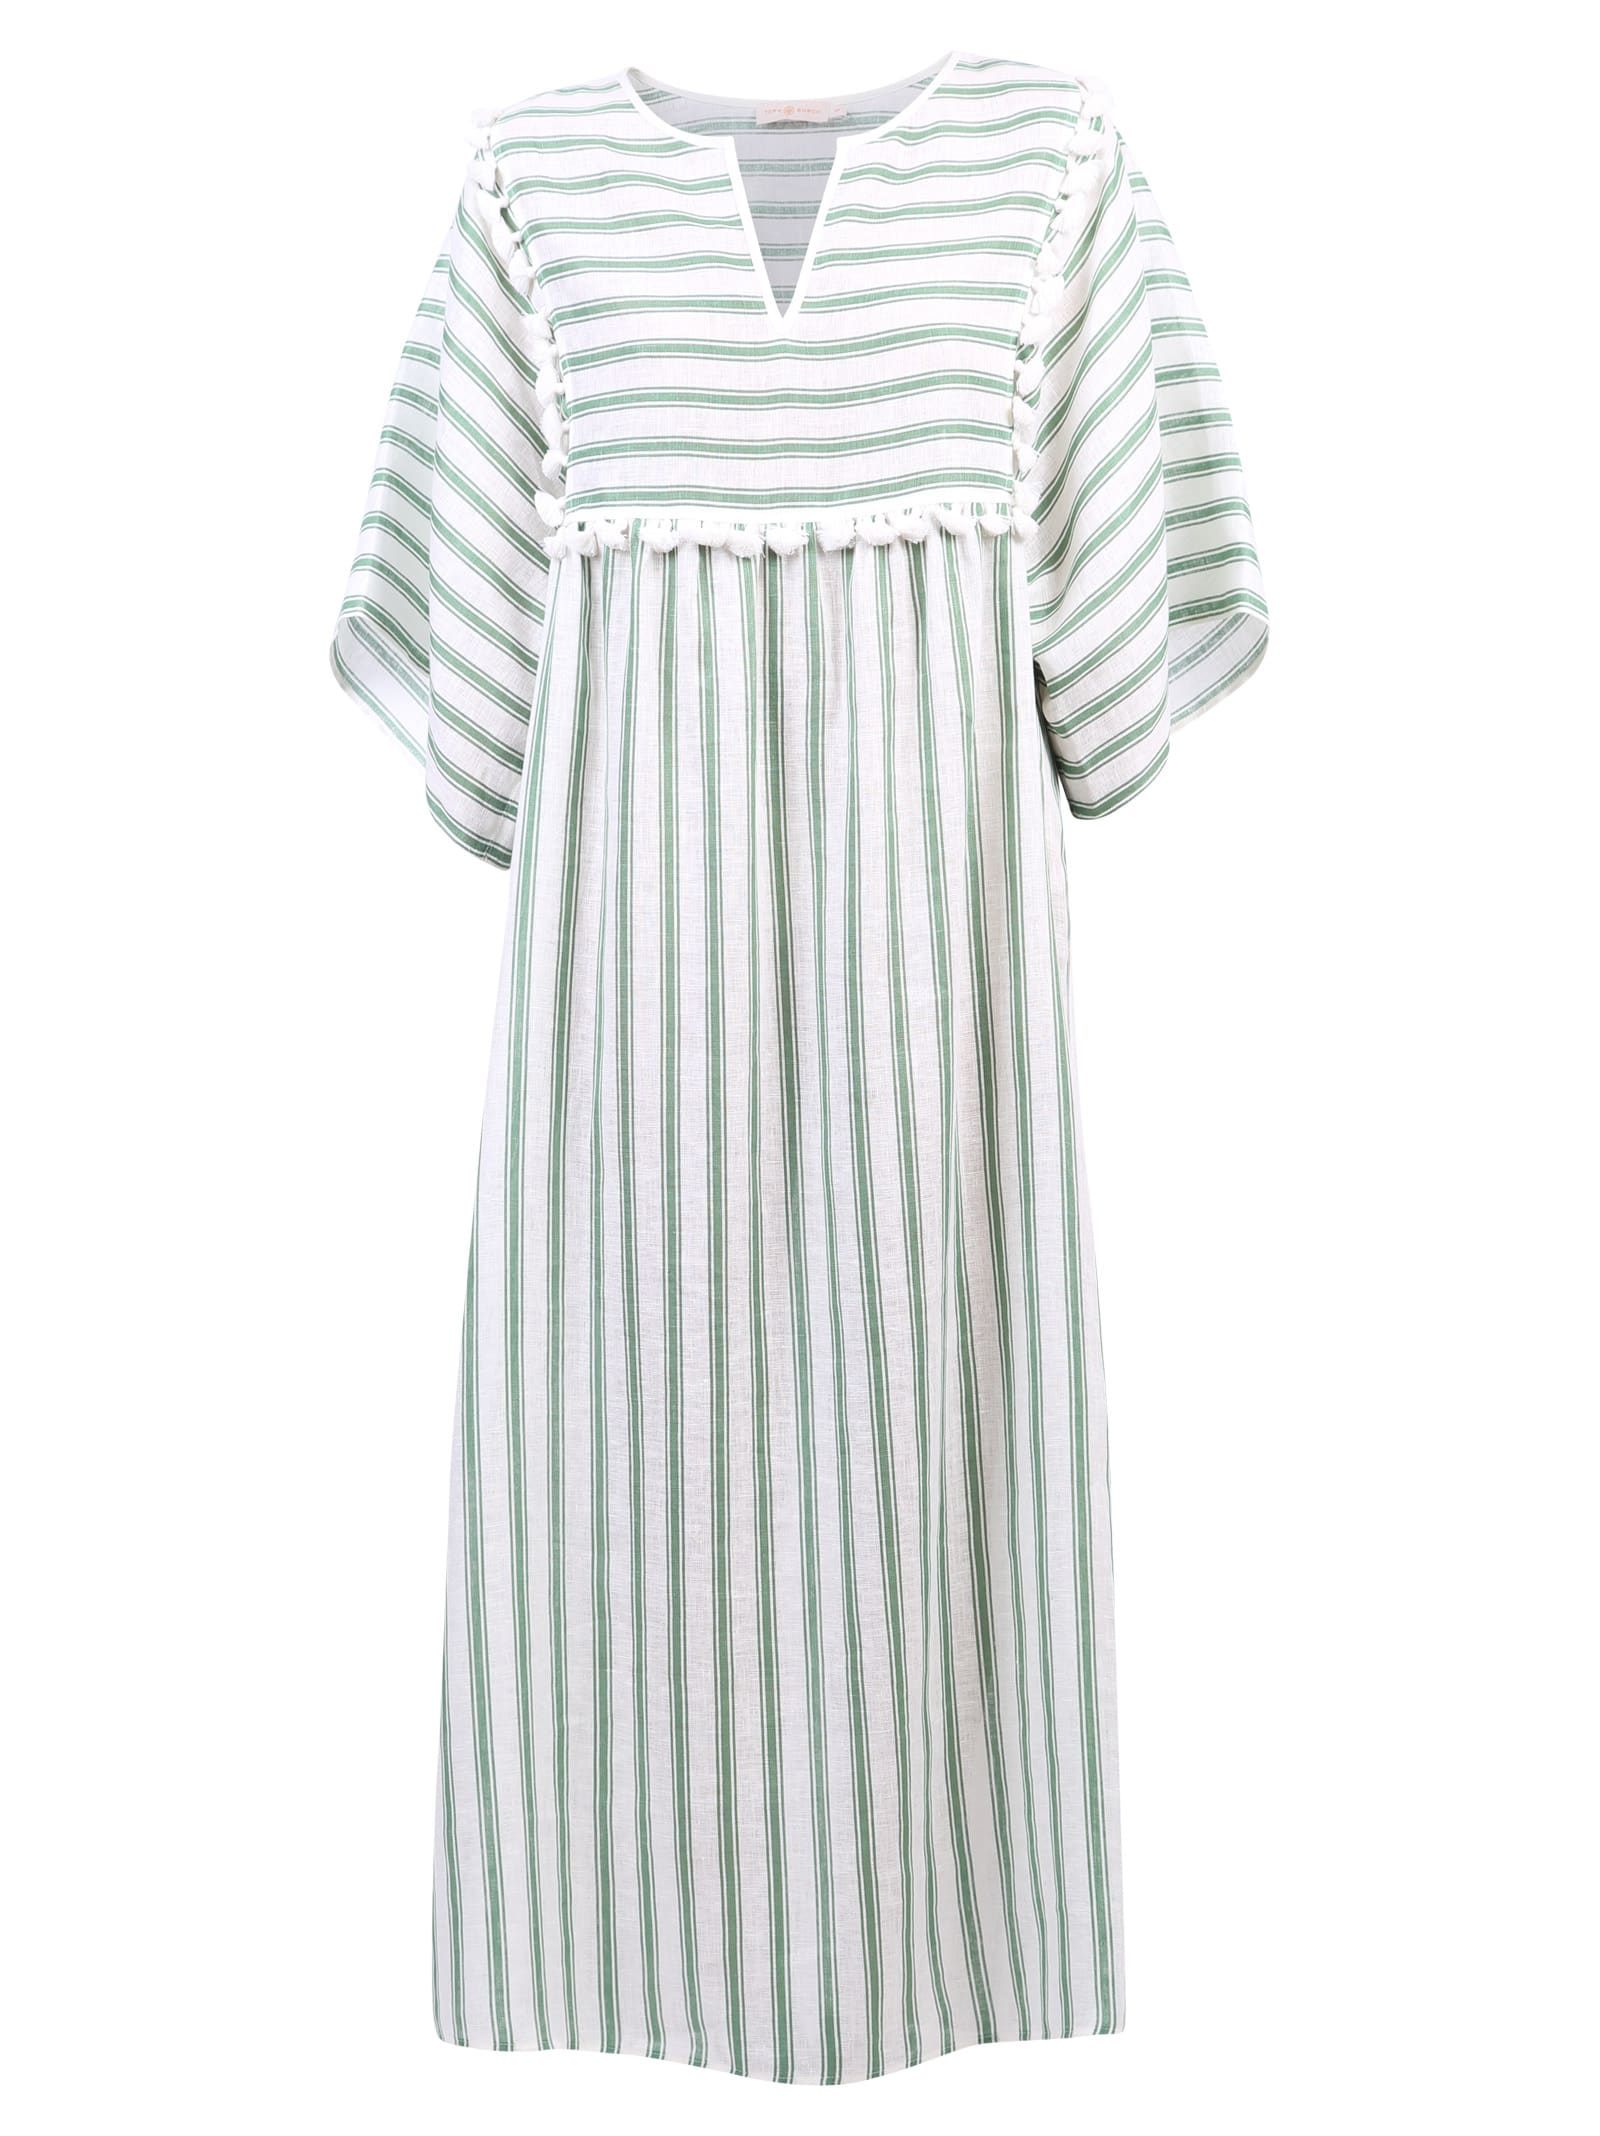 Buy Tory Burch Striped Dress online, shop Tory Burch with free shipping